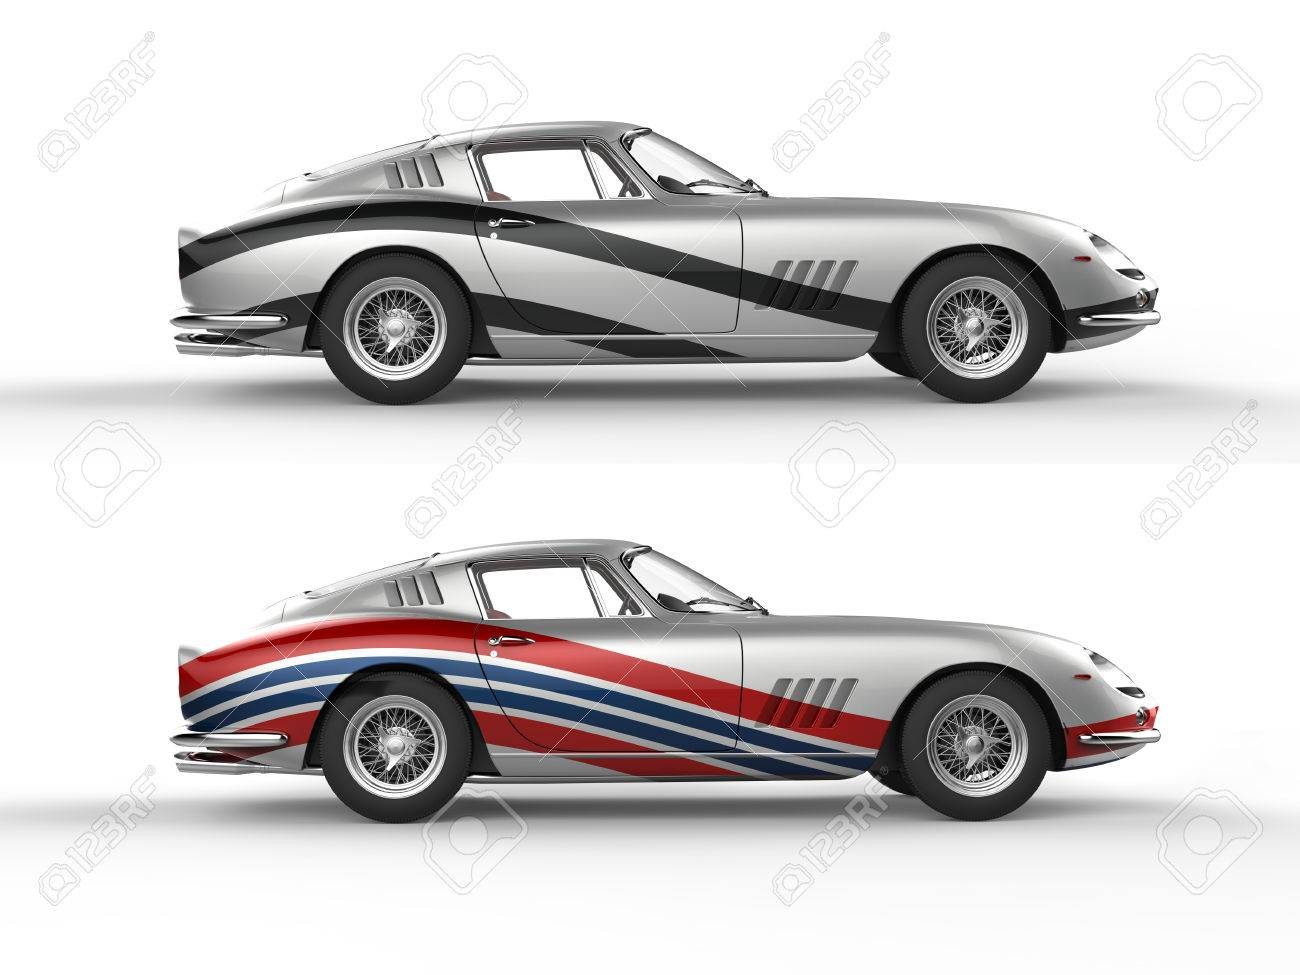 Silver vintage sports cars with racing stripes side view isolated on white background stock